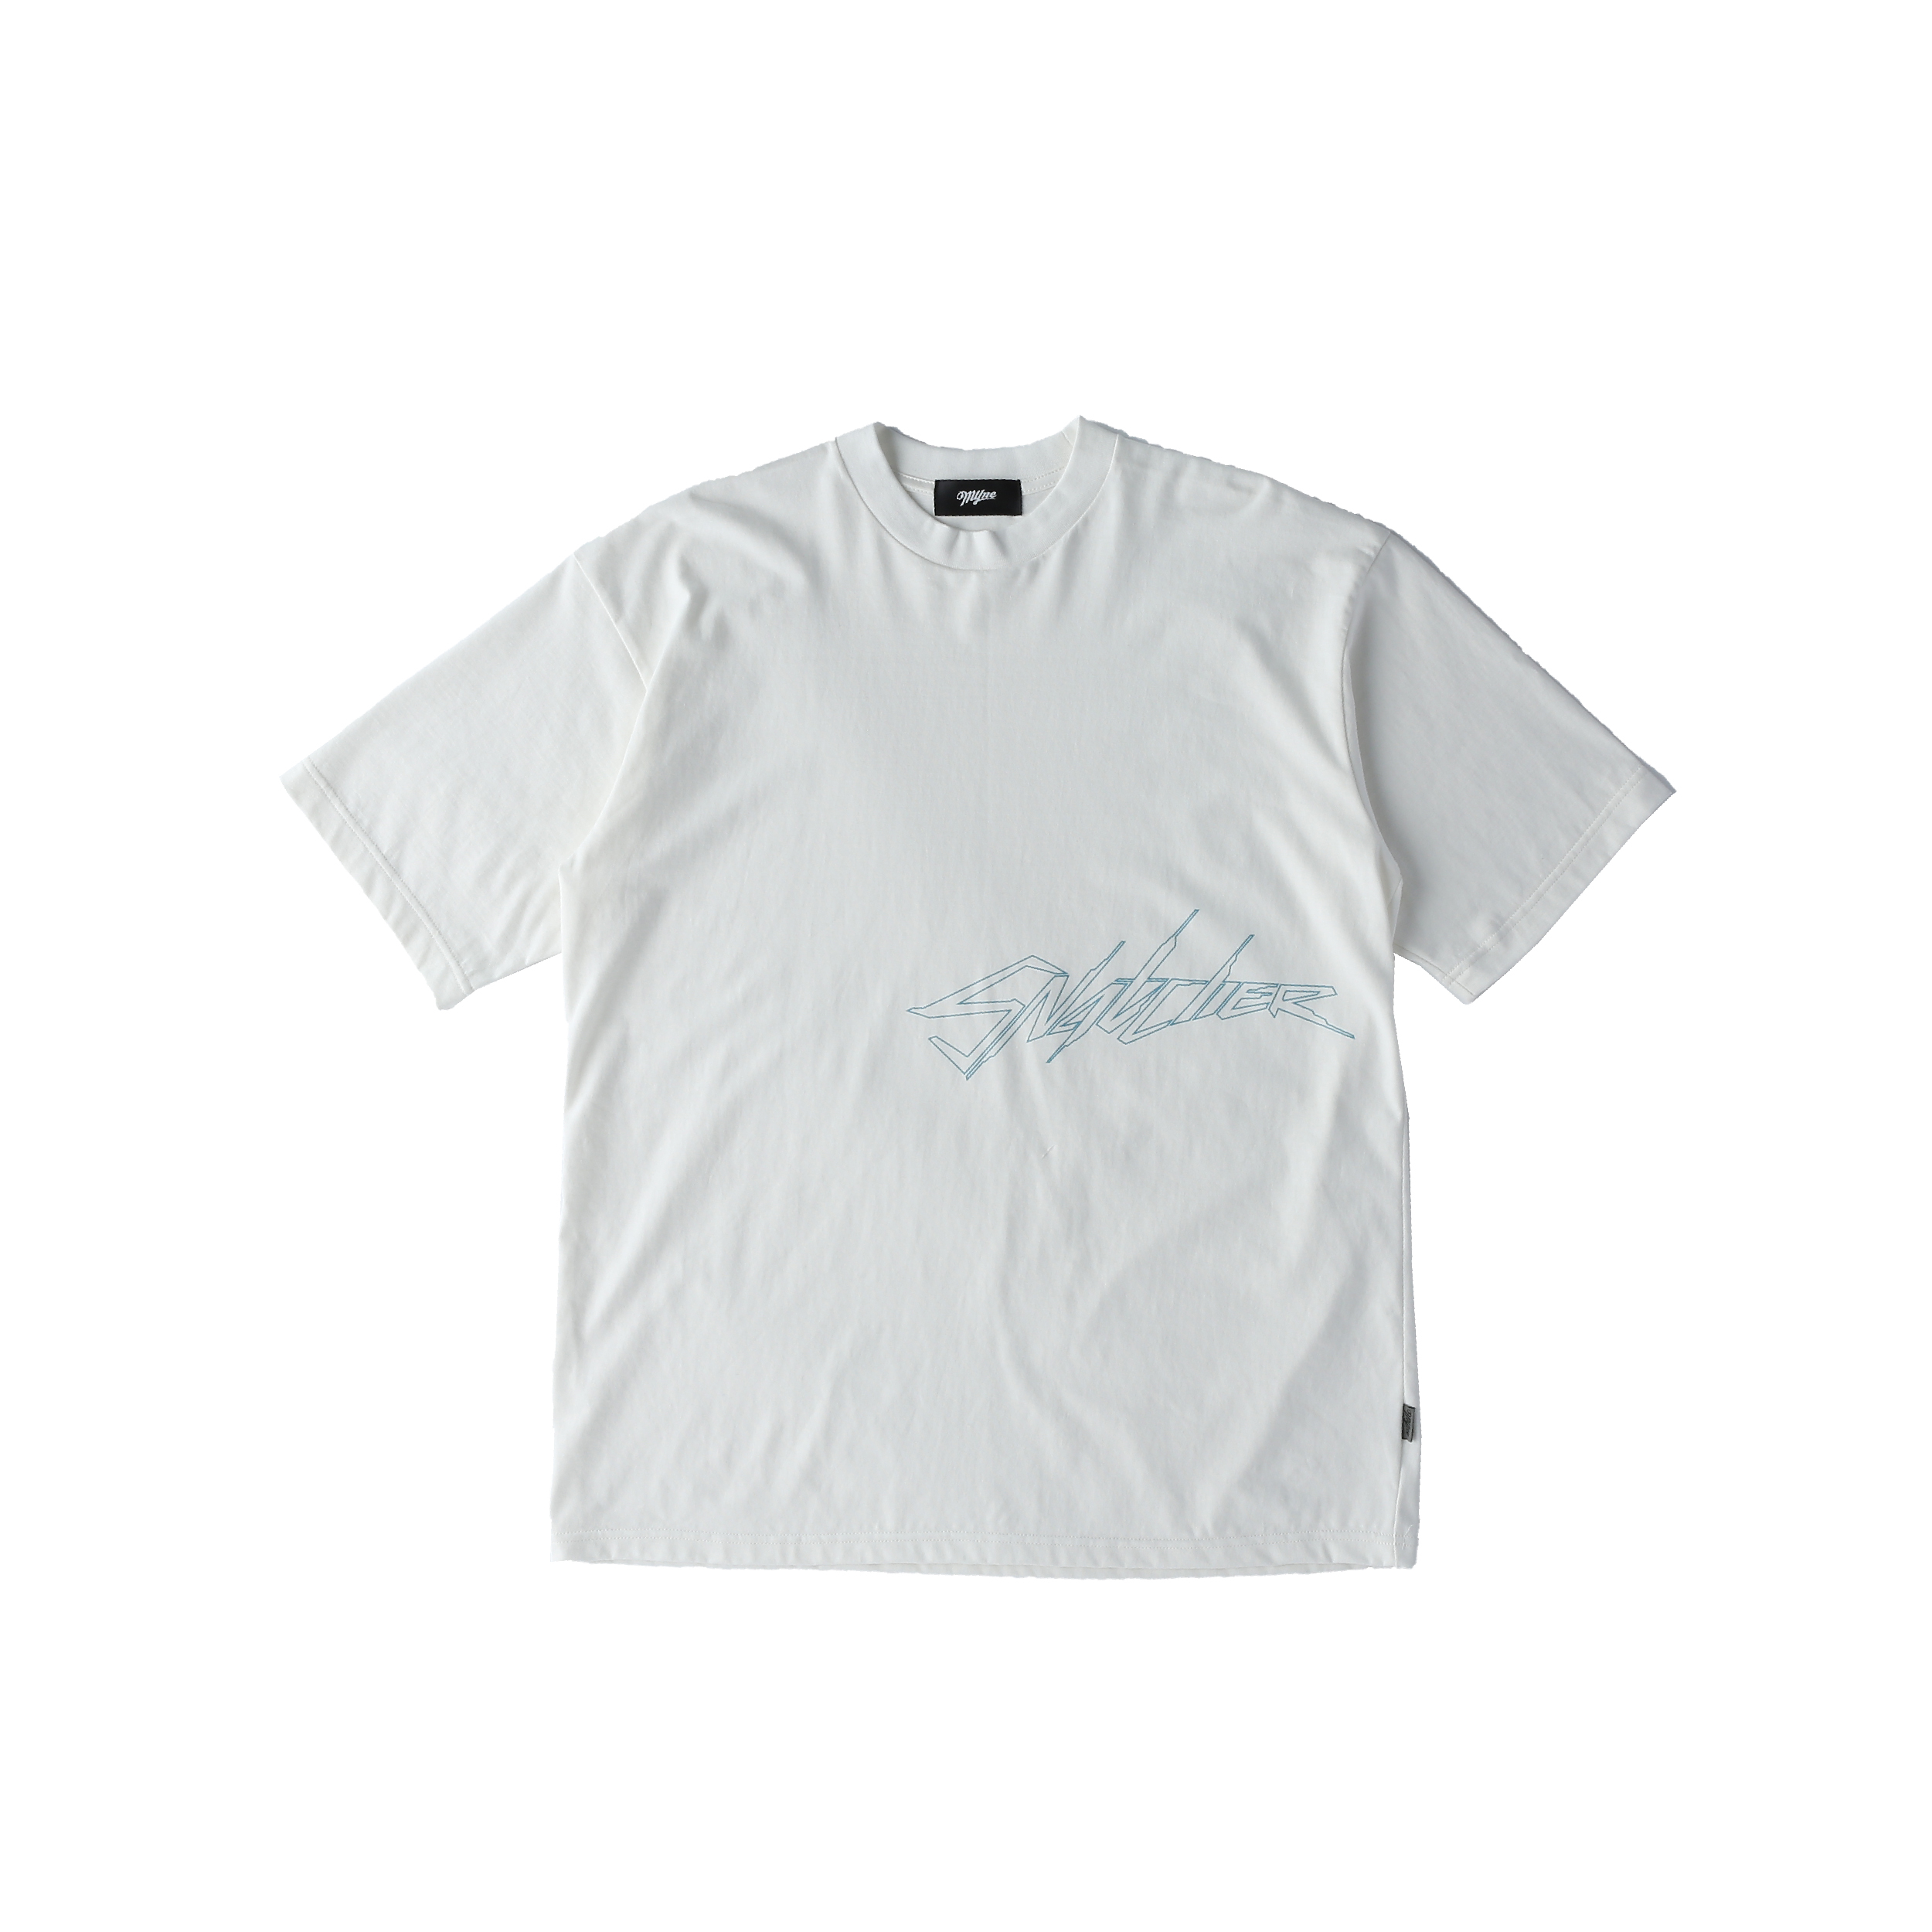 SNATCHER T-shirt / WHITE  - 画像1